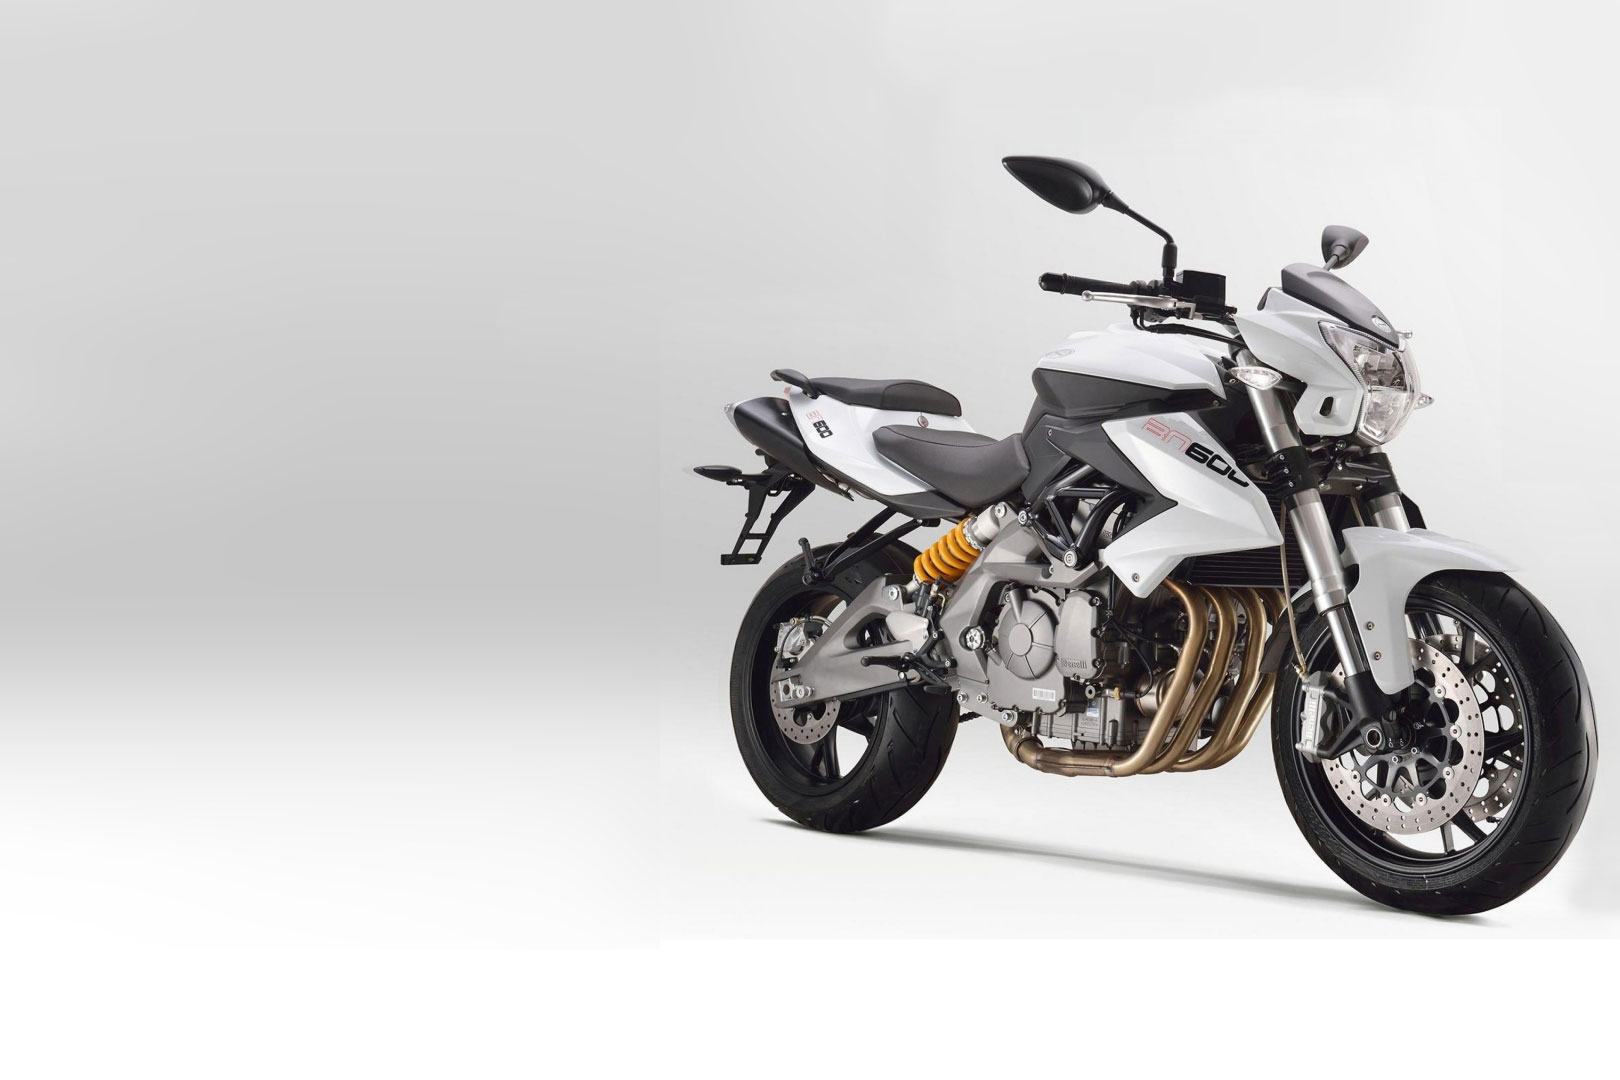 2013 Benelli BN600 Review